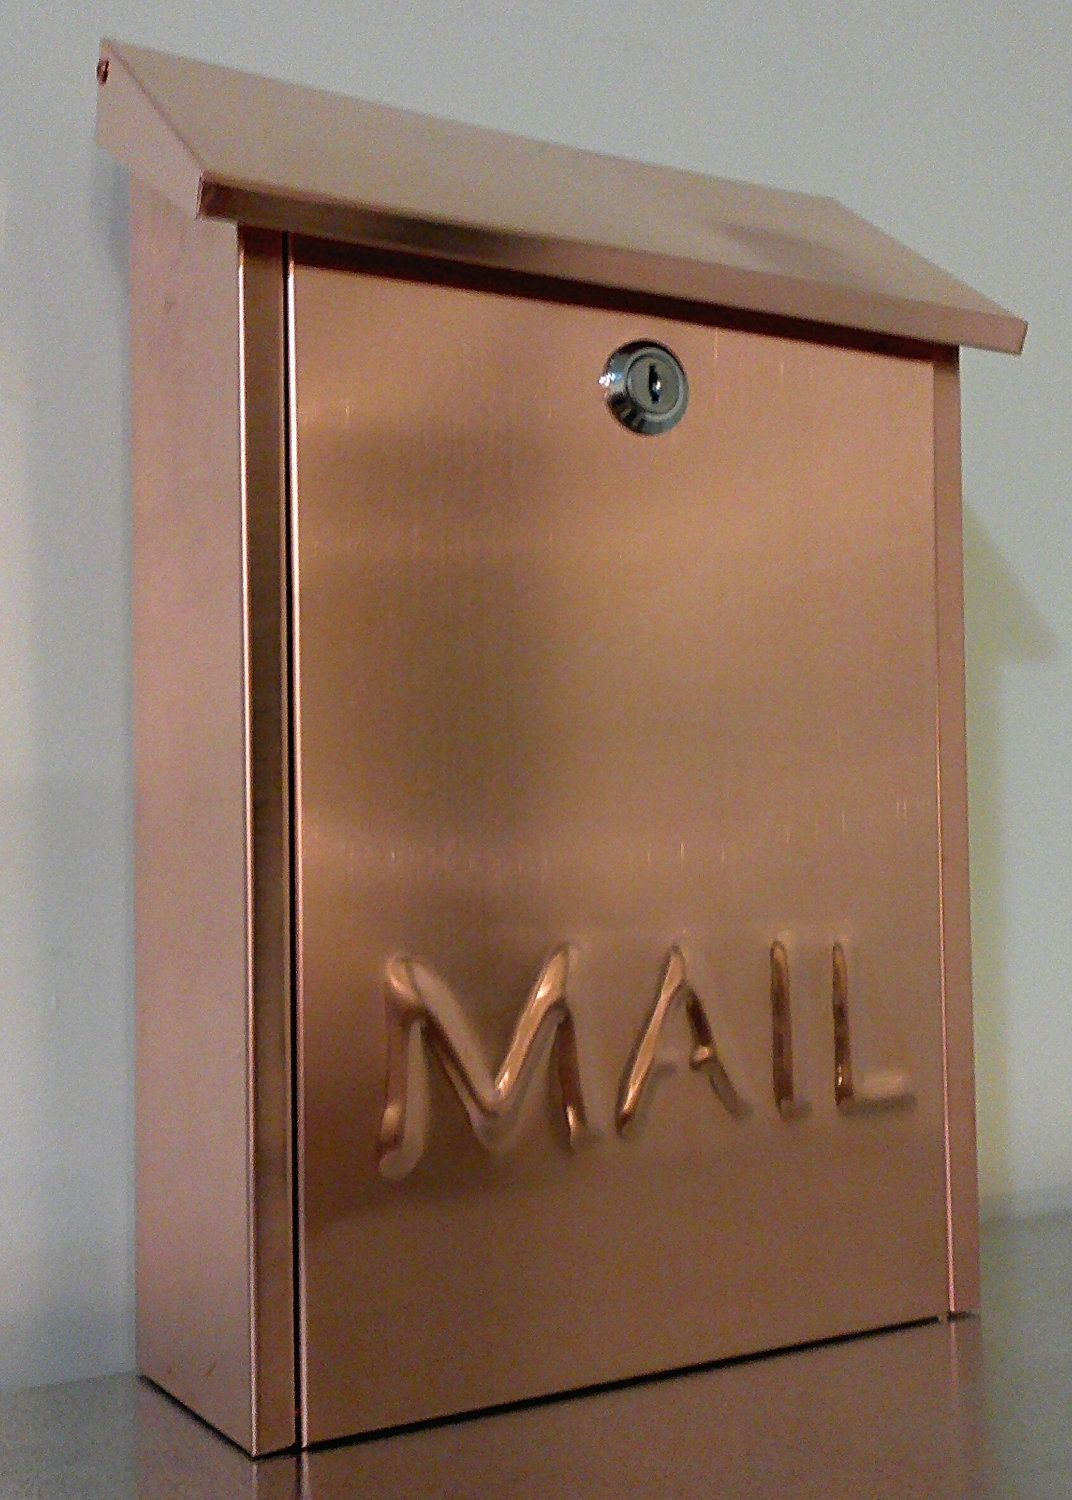 Wall Mounted Copper Mailbox 95 00 Via Etsy